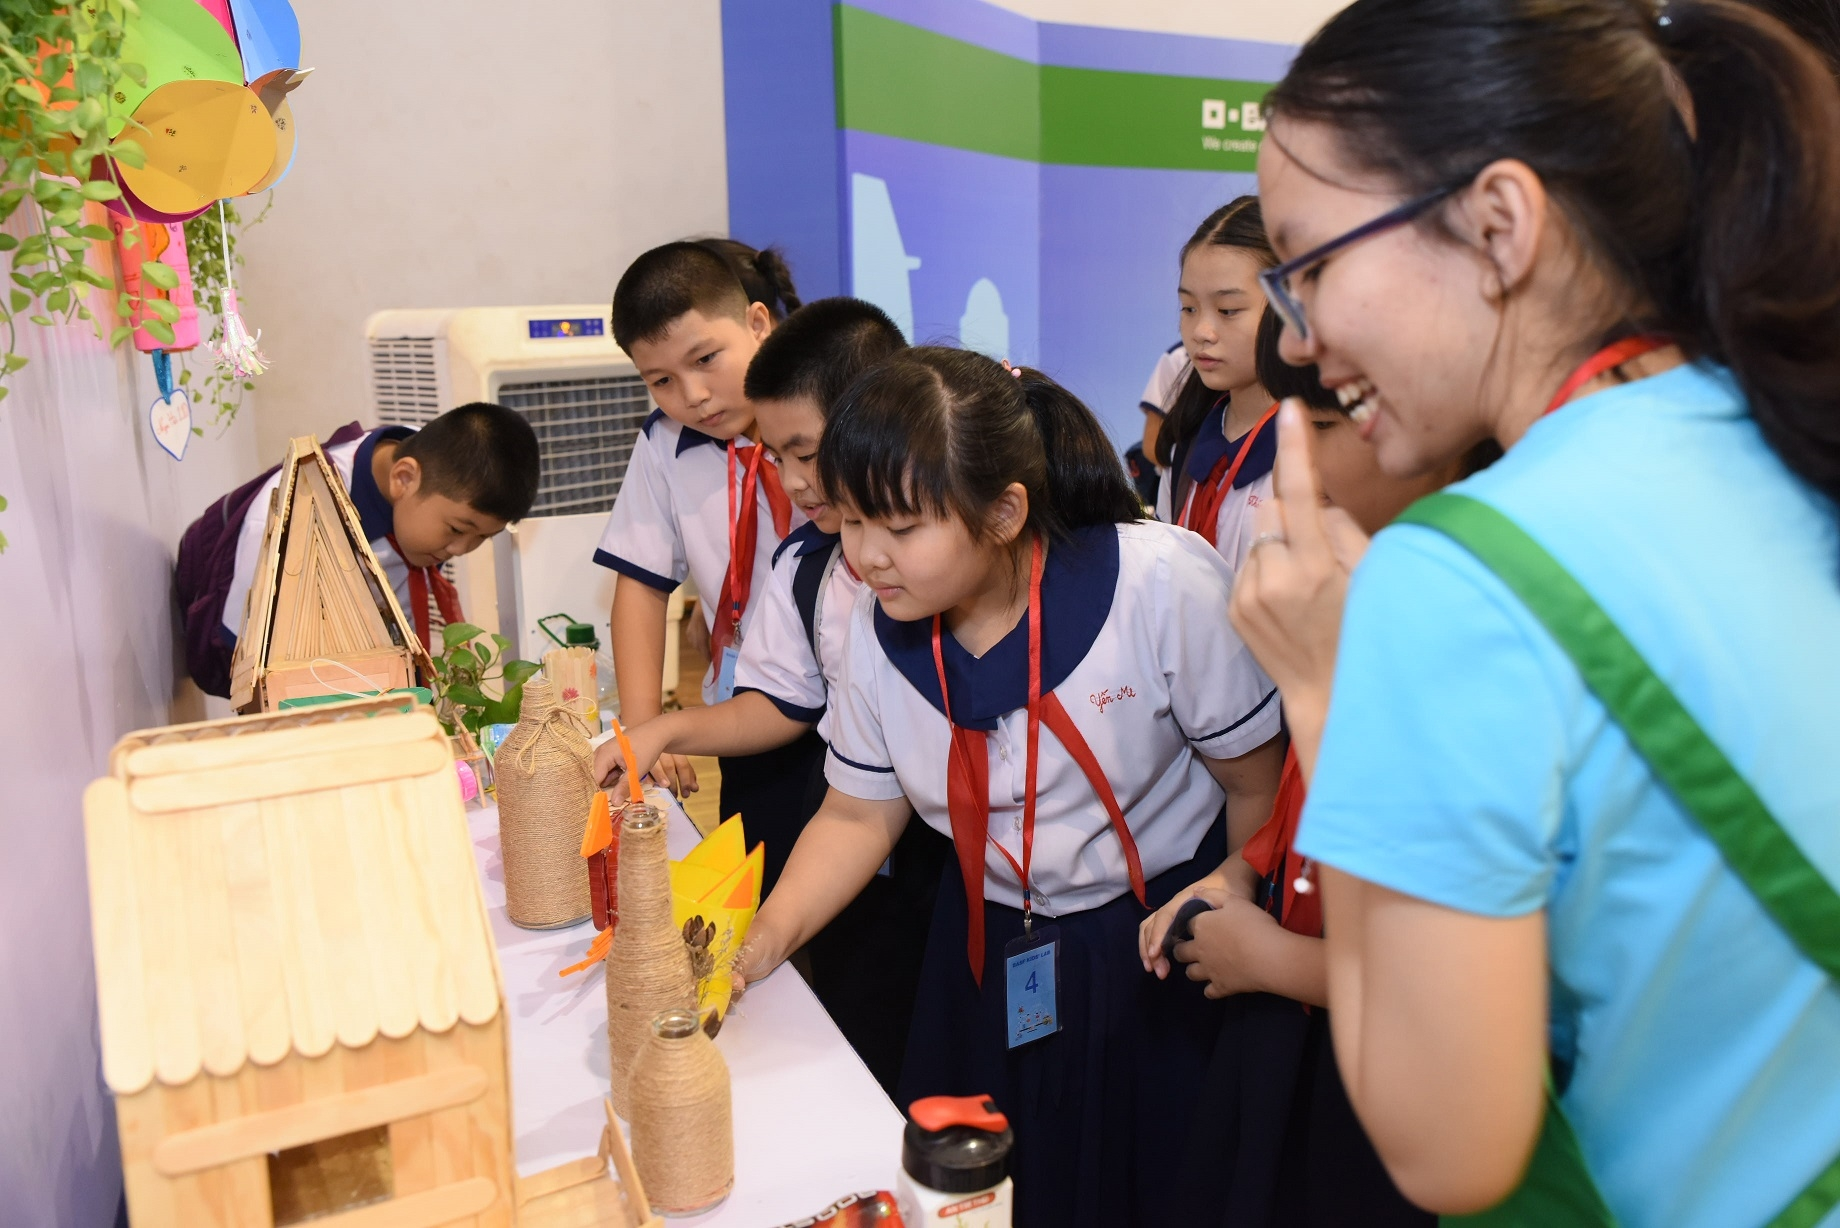 650 children learn about recycling at basf kids lab